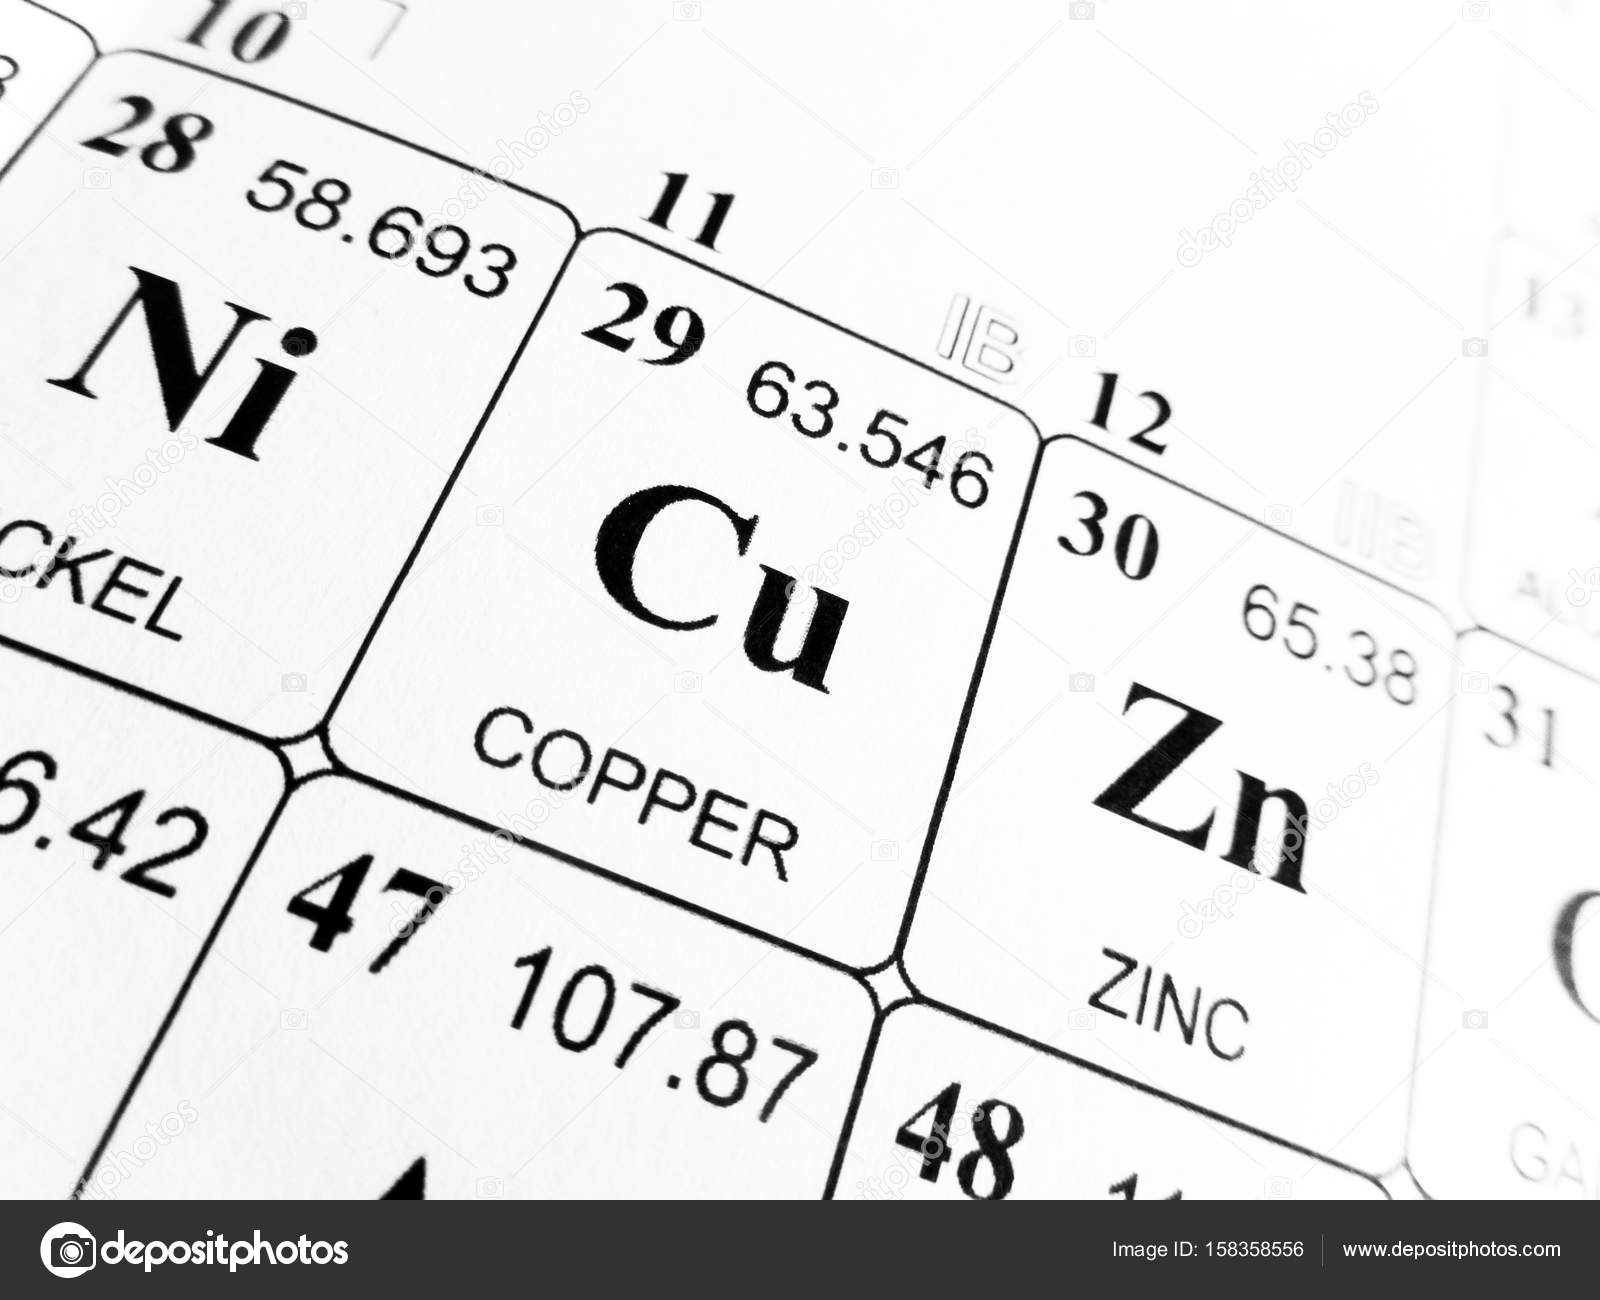 Periodic table of copper image collections periodic table images copper on the periodic table of the elements stock photo copper on the periodic table of gamestrikefo Gallery